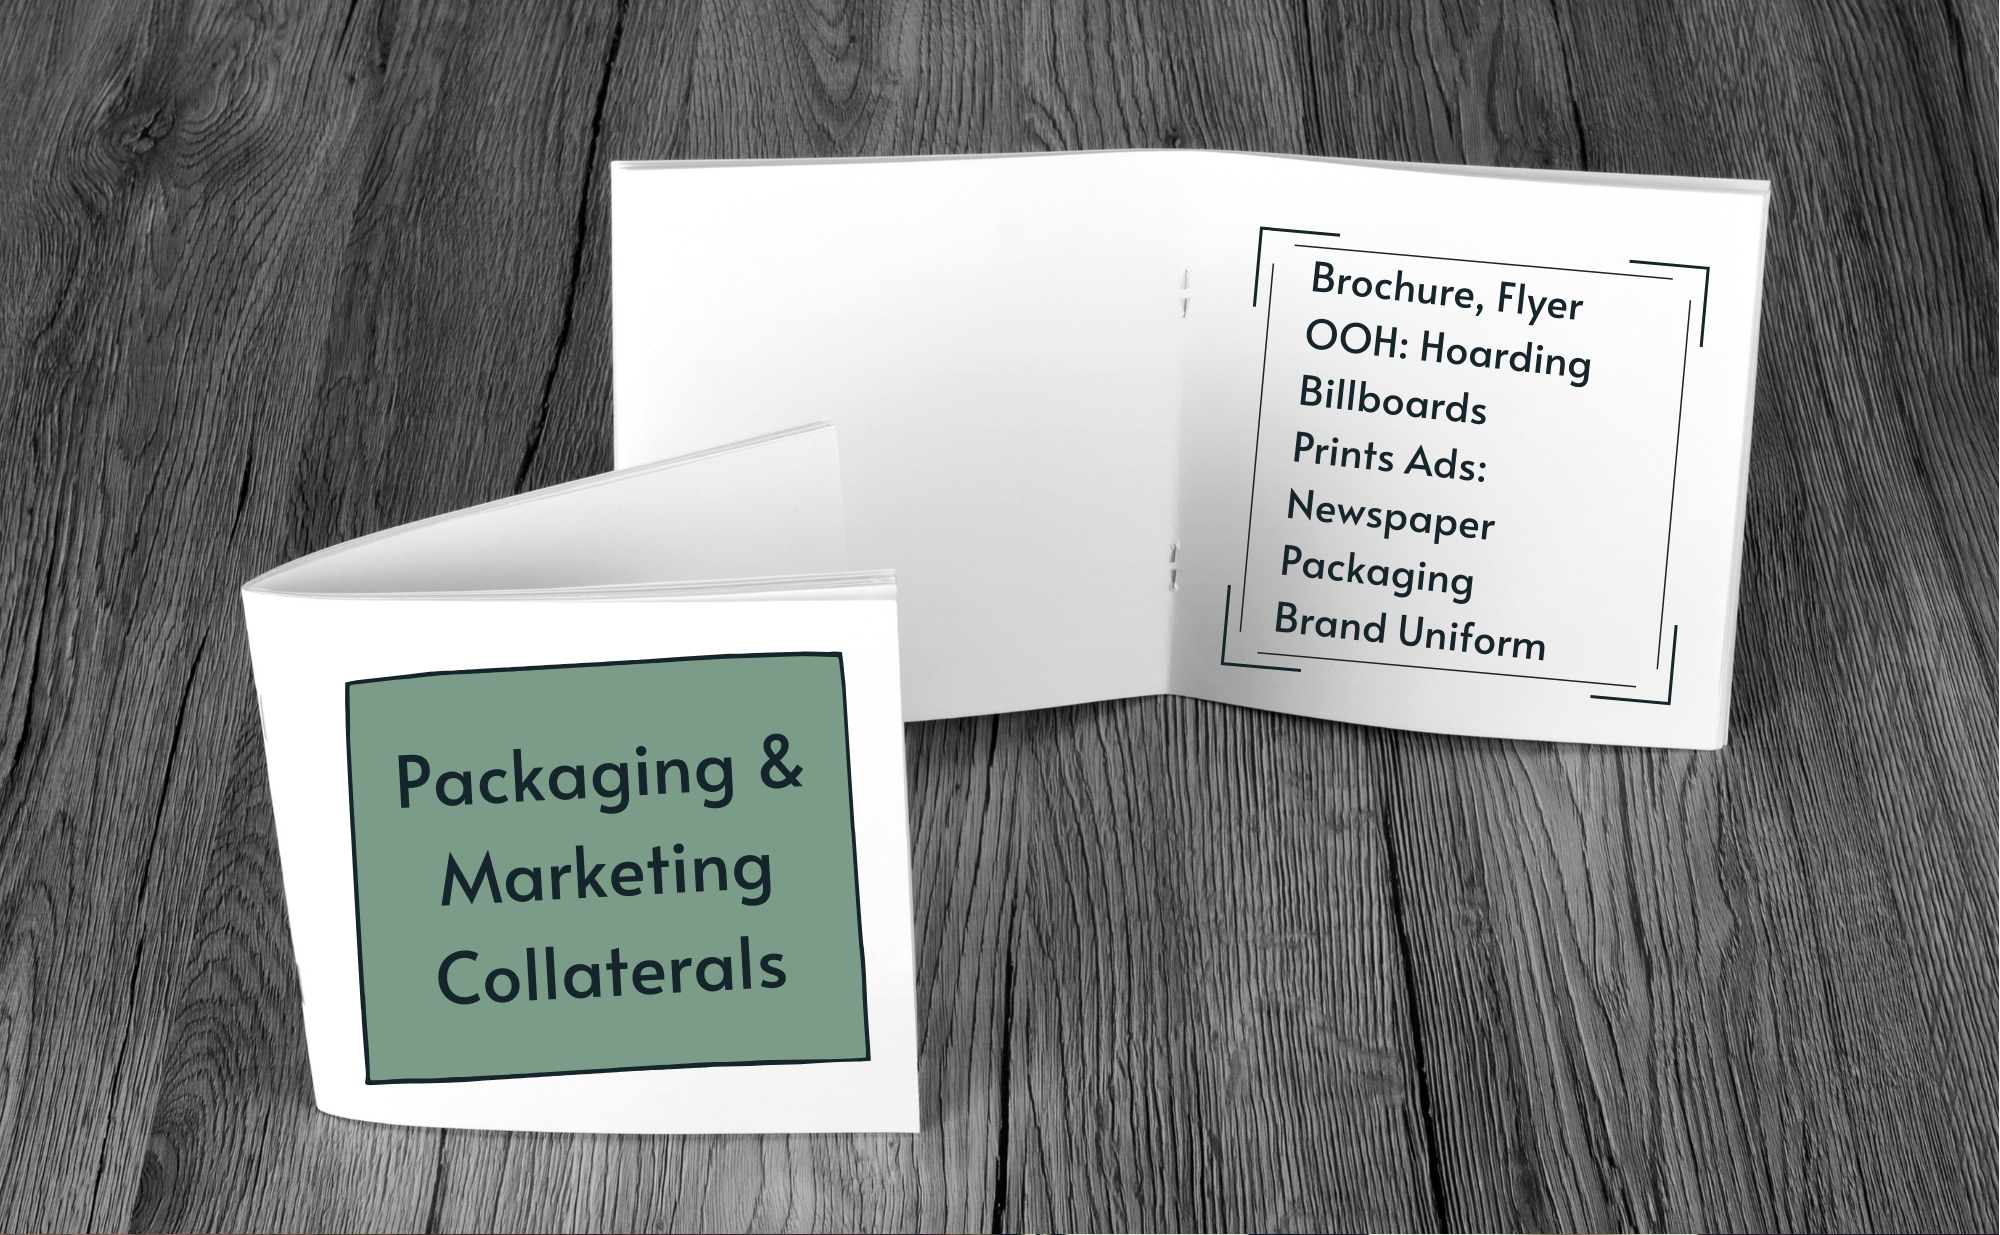 Packaging & Marketing Collaterals